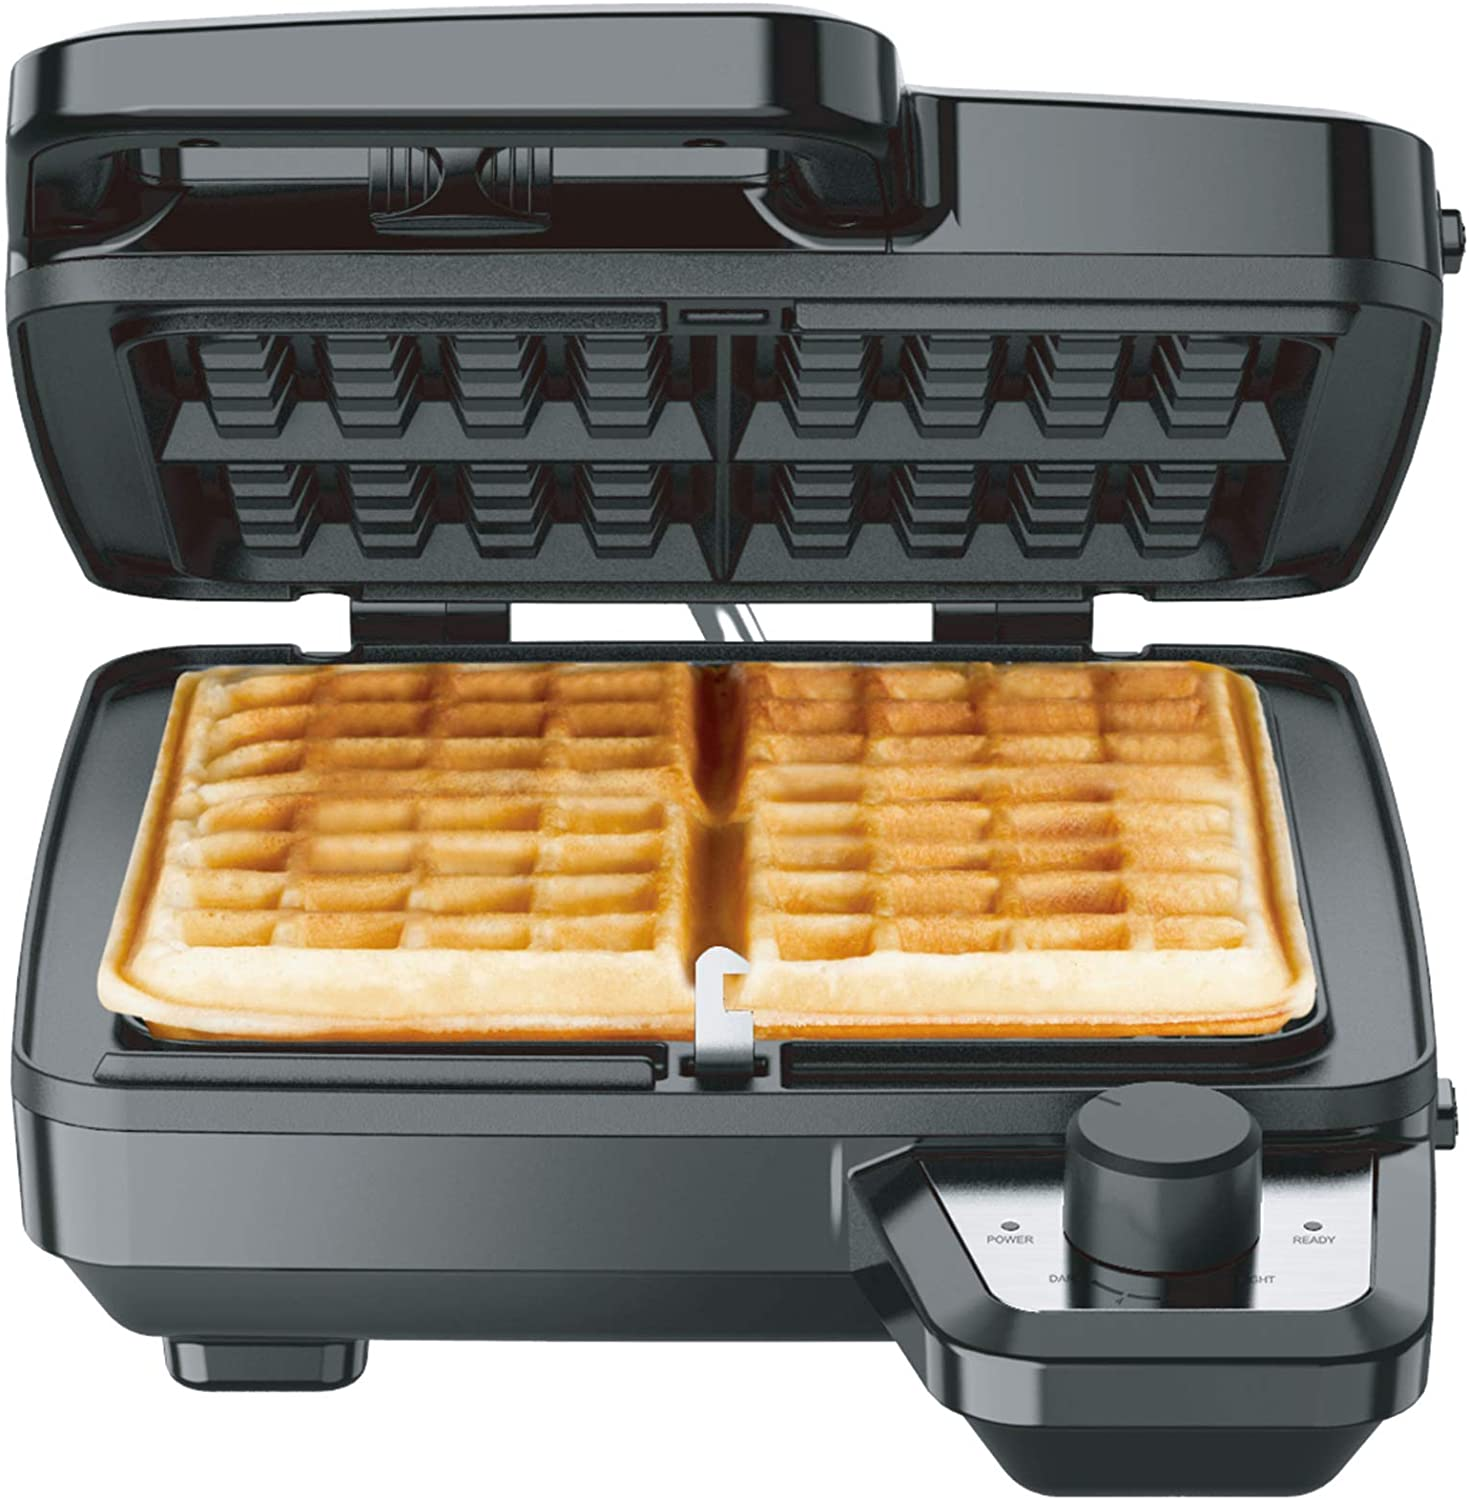 Elechomes Waffle Maker with Removable Plates, 4-Slice Belgian Waffle Iron, Anti-Overflow Nonstick Grids, Browning Control, Indicator Light, Compact Design, Recipes Included, Stainless Steel: Kitchen & Dining